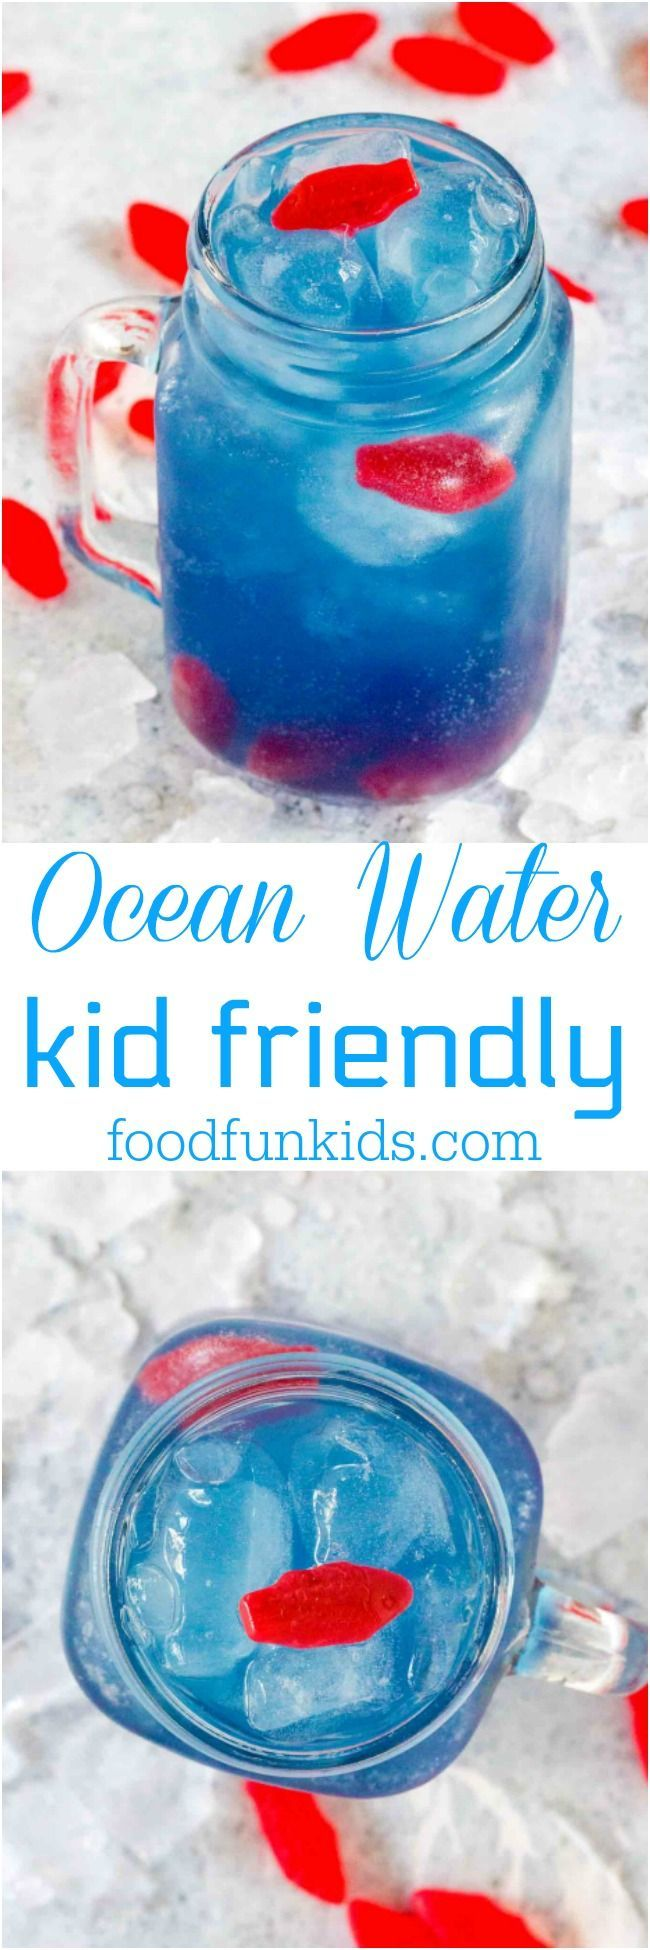 Ocean Water is colorful, sweet, tangy and refreshing. This kid friendly version has been inspired by the famous Sonic Ocean Water. #kids #drink #sonic #copycat